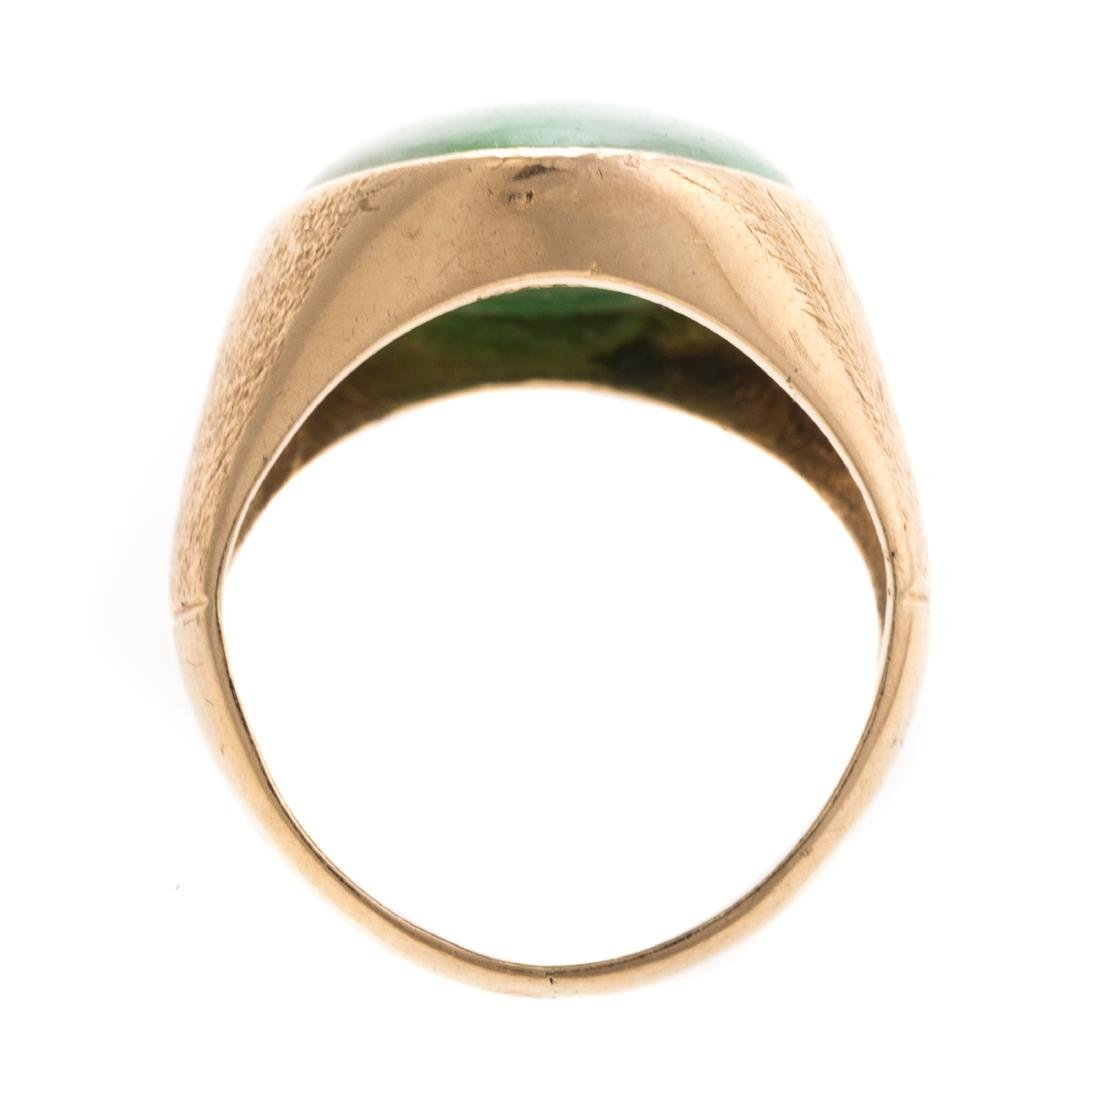 A Lady's Jadeite Ring in 14K Gold - 3